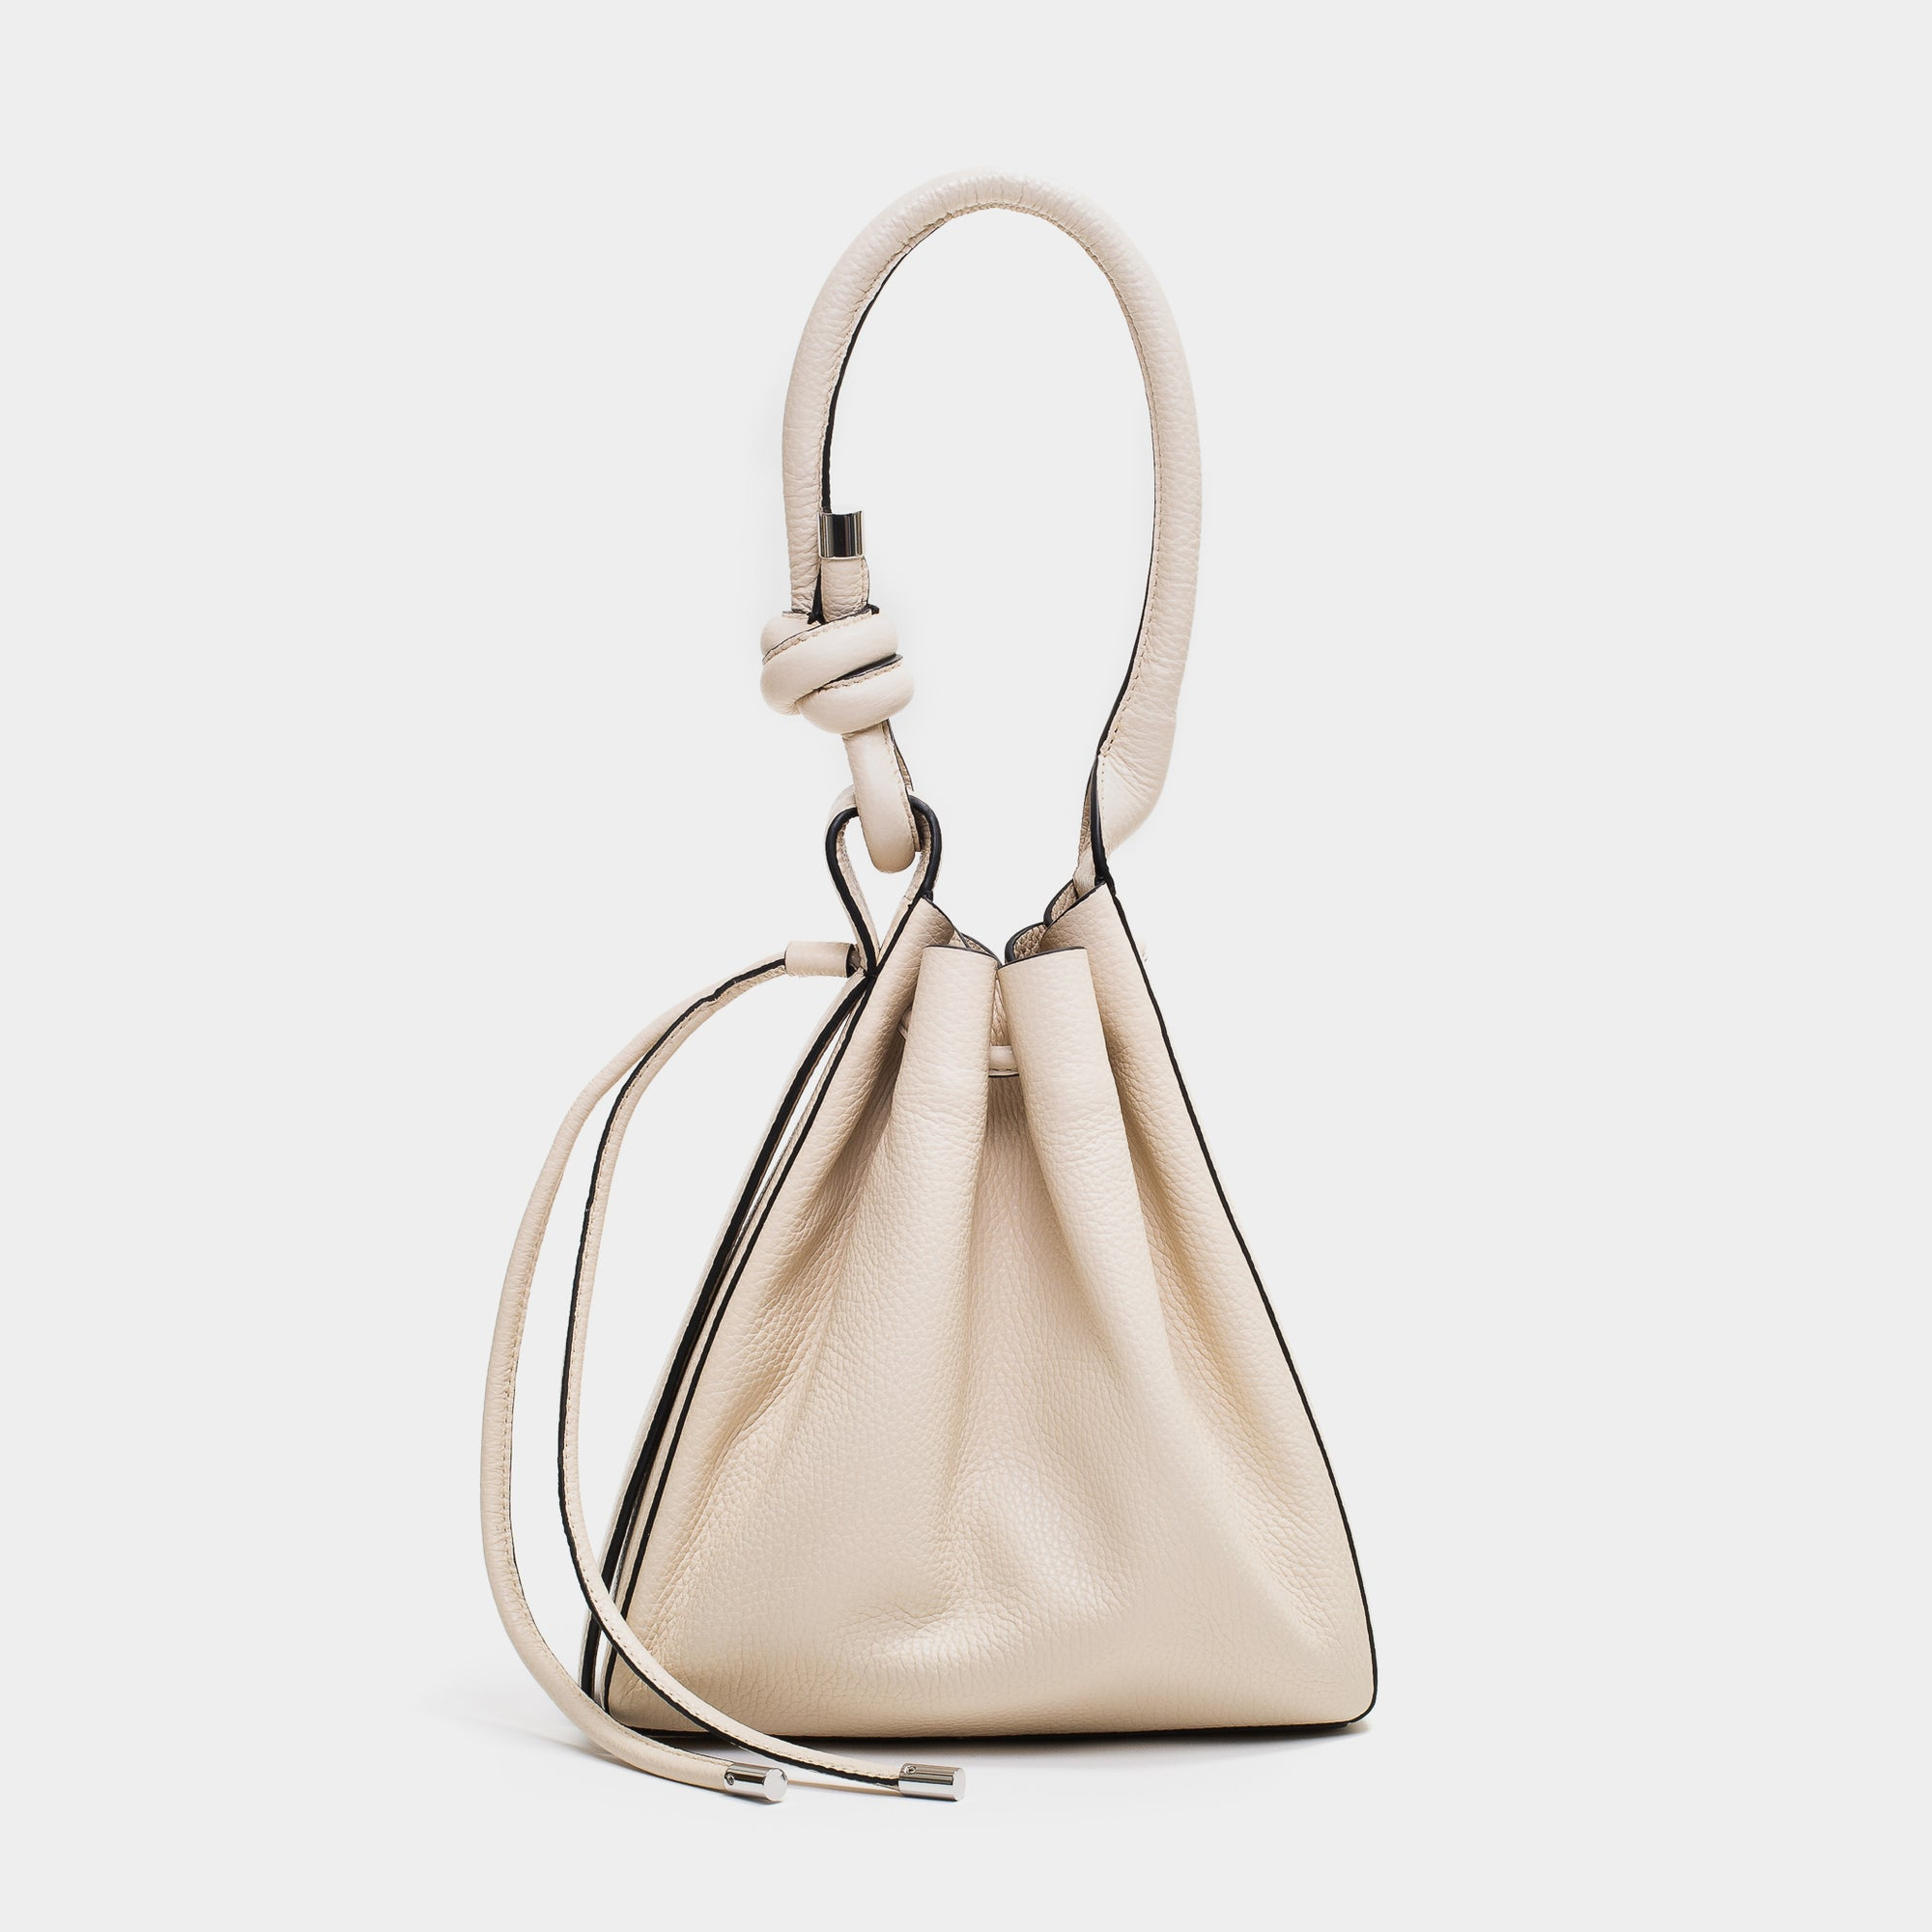 TINA BAG PEBBLE BONE